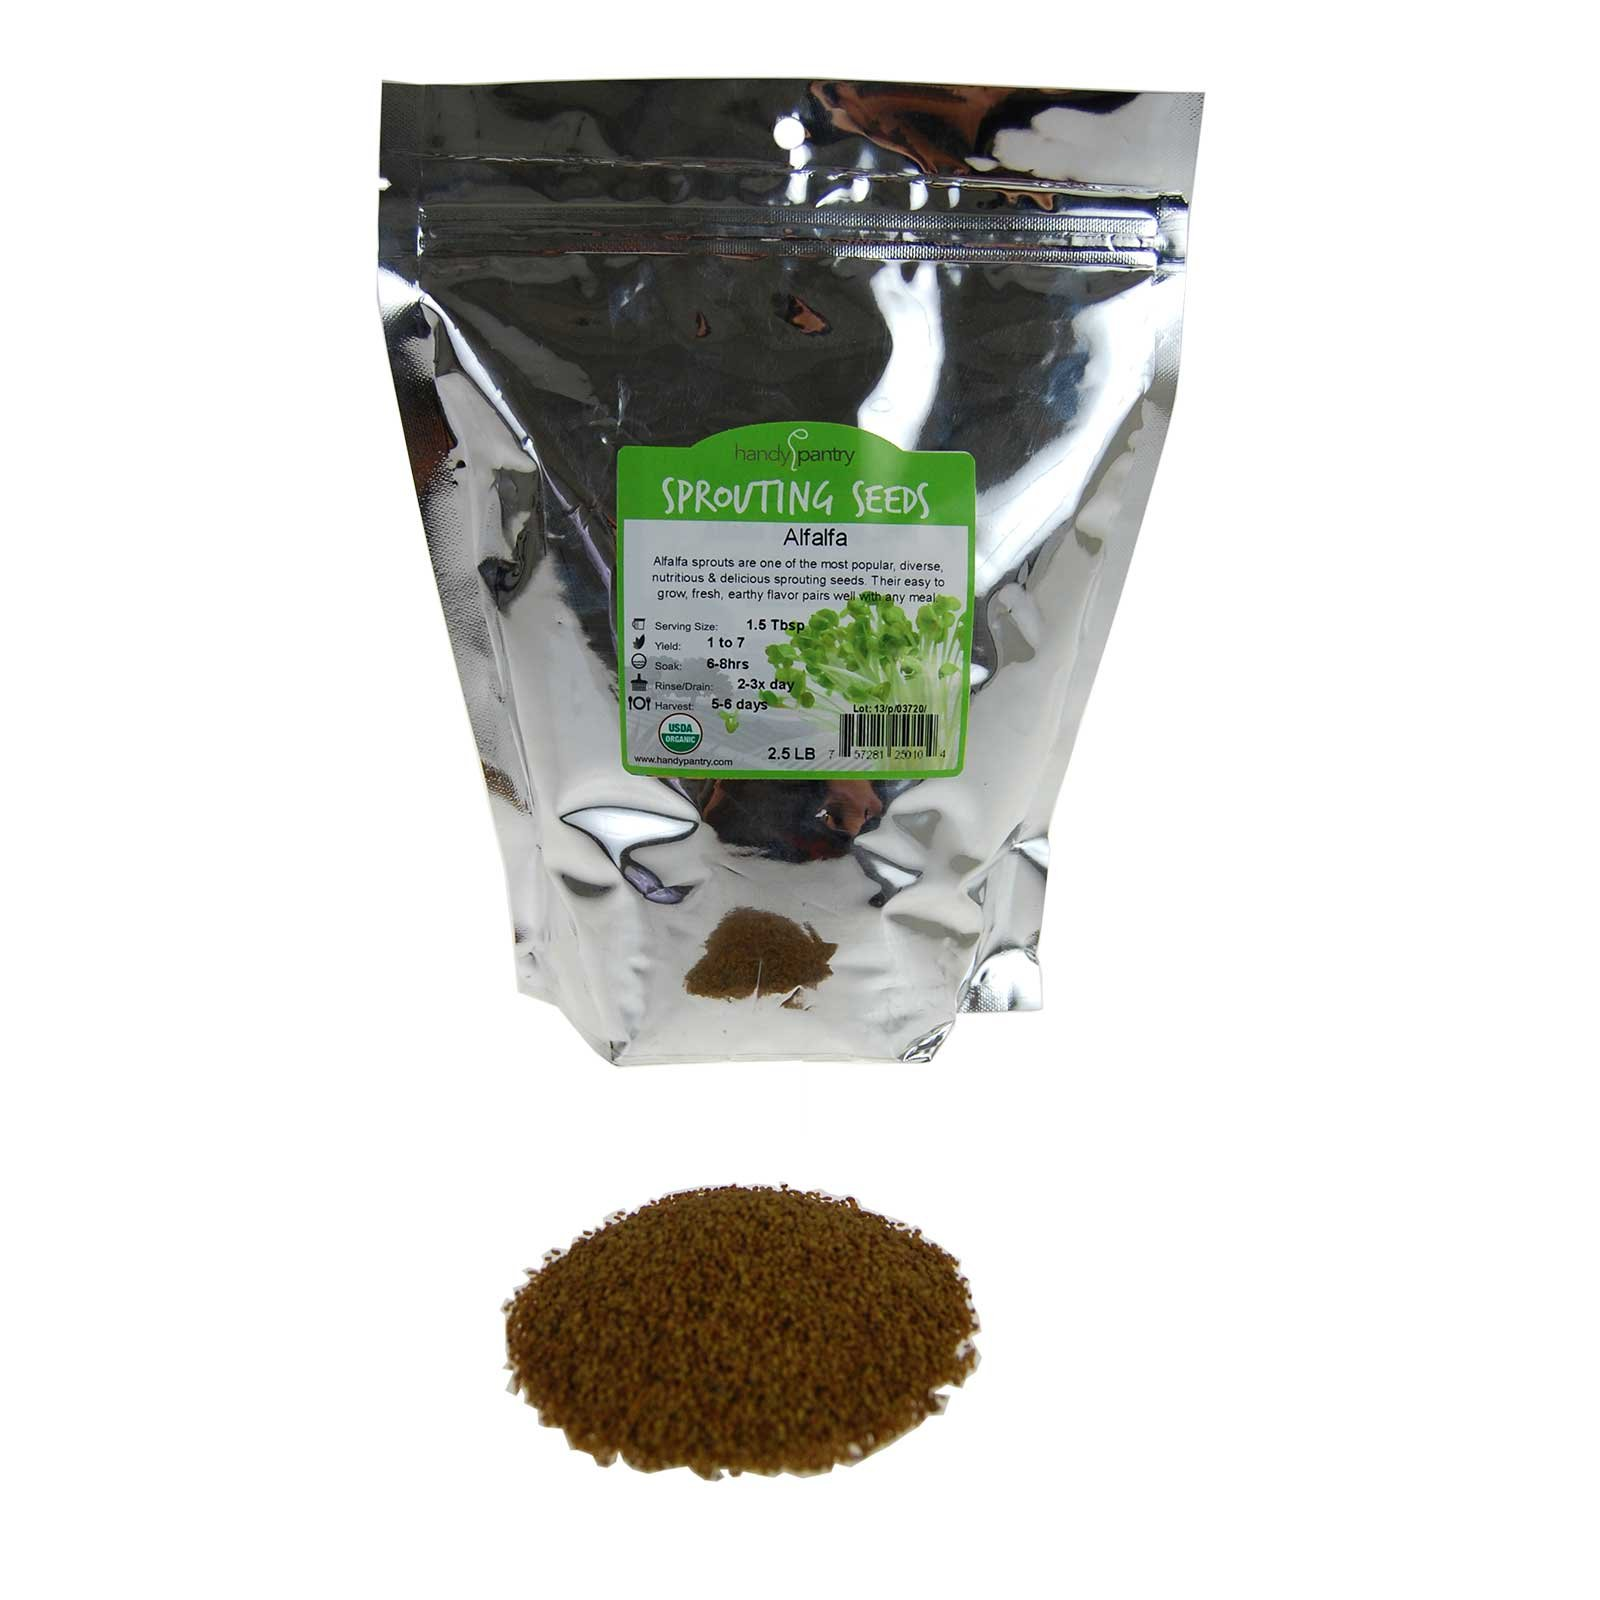 Certified Organic Alfalfa Sprouting Seed- 2.5 Lbs - Handy Pantry Brand - High Sprout Germination- Gardening, Growing Salad Sprouts, Planting, Food Storage & More by Handy Pantry